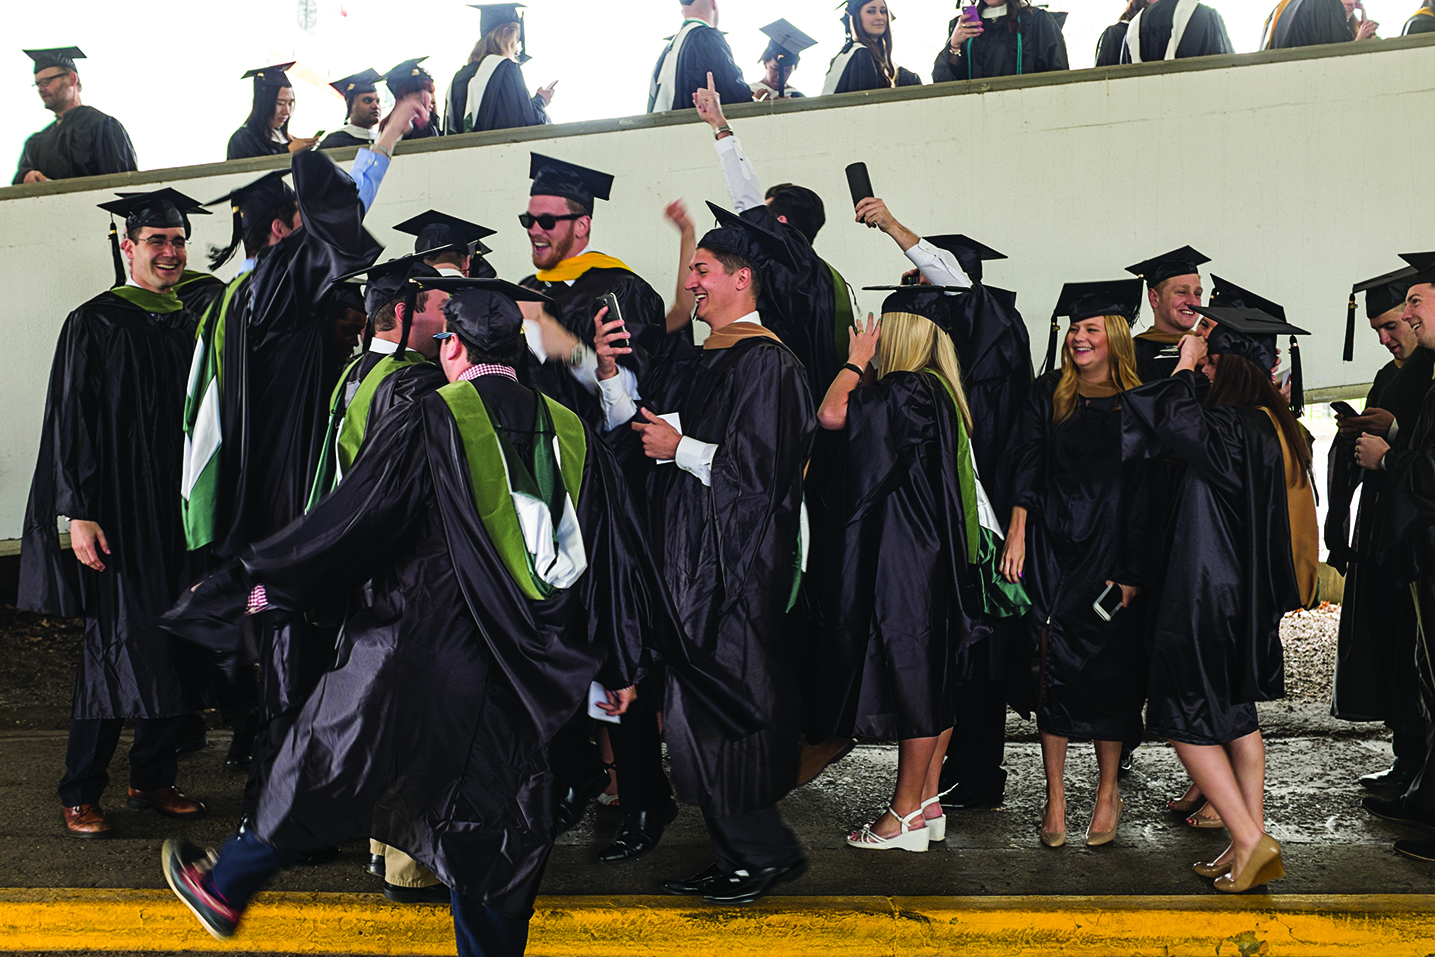 Students from Sports Administration in the College of Business get down to the sounds of a Bluetooth speaker before the start of Ohio University's Graduate Commencement on Friday, May 1, 2015. Photo by Rob Hardin / Rob Hardin